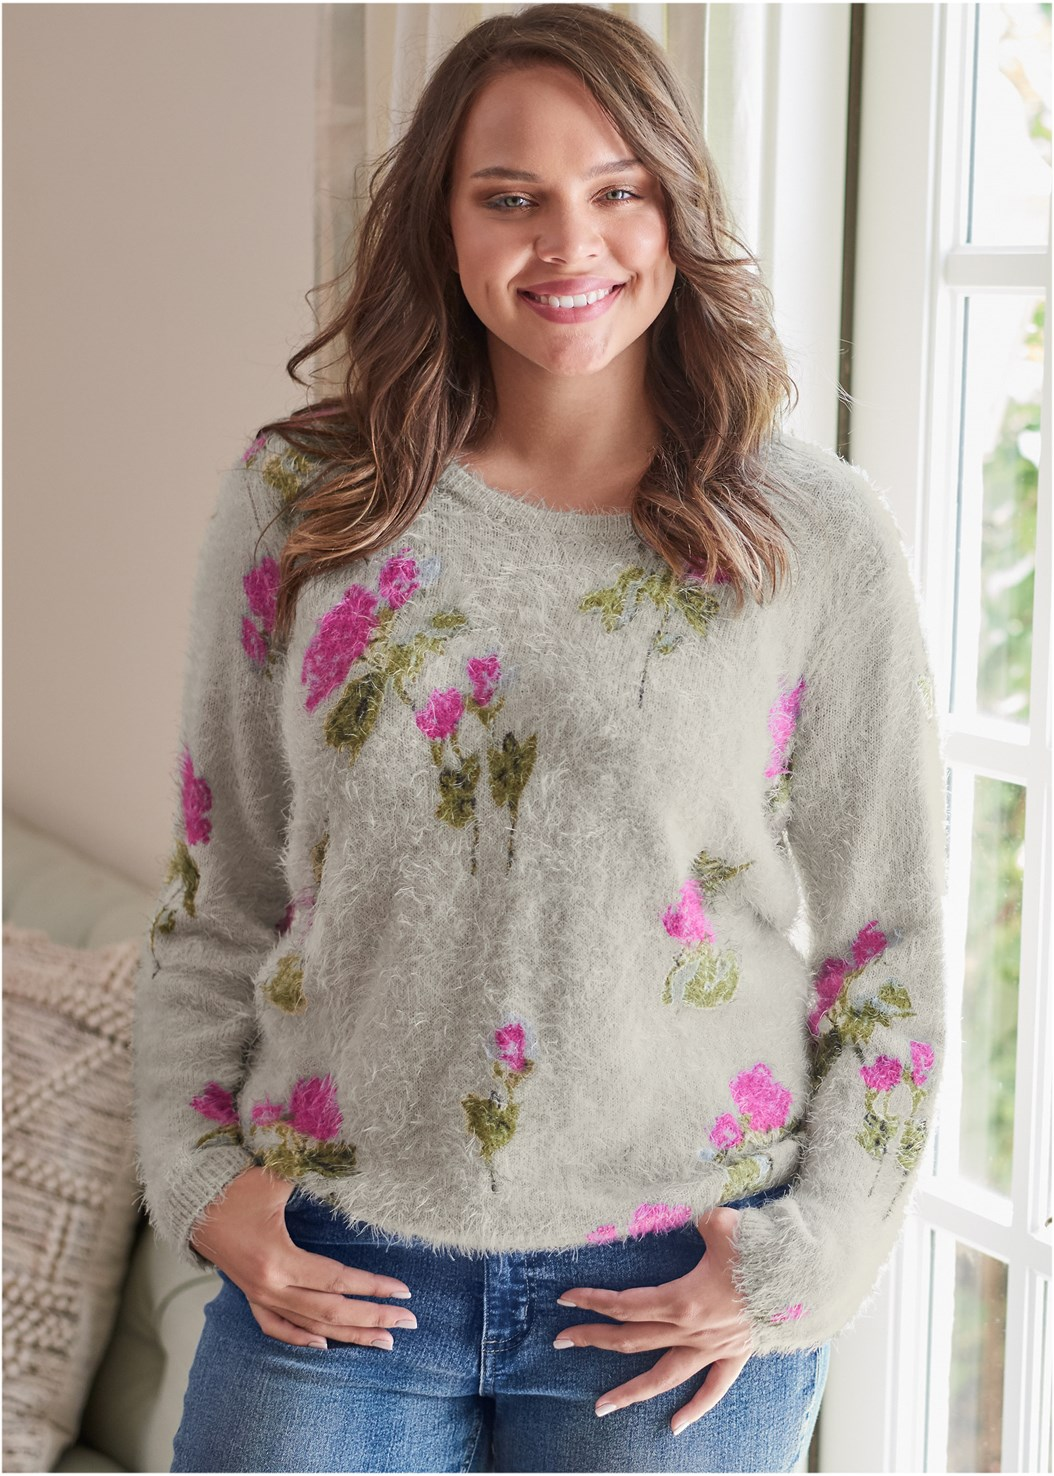 Floral Cozy Sweater,Casual Bootcut Jeans